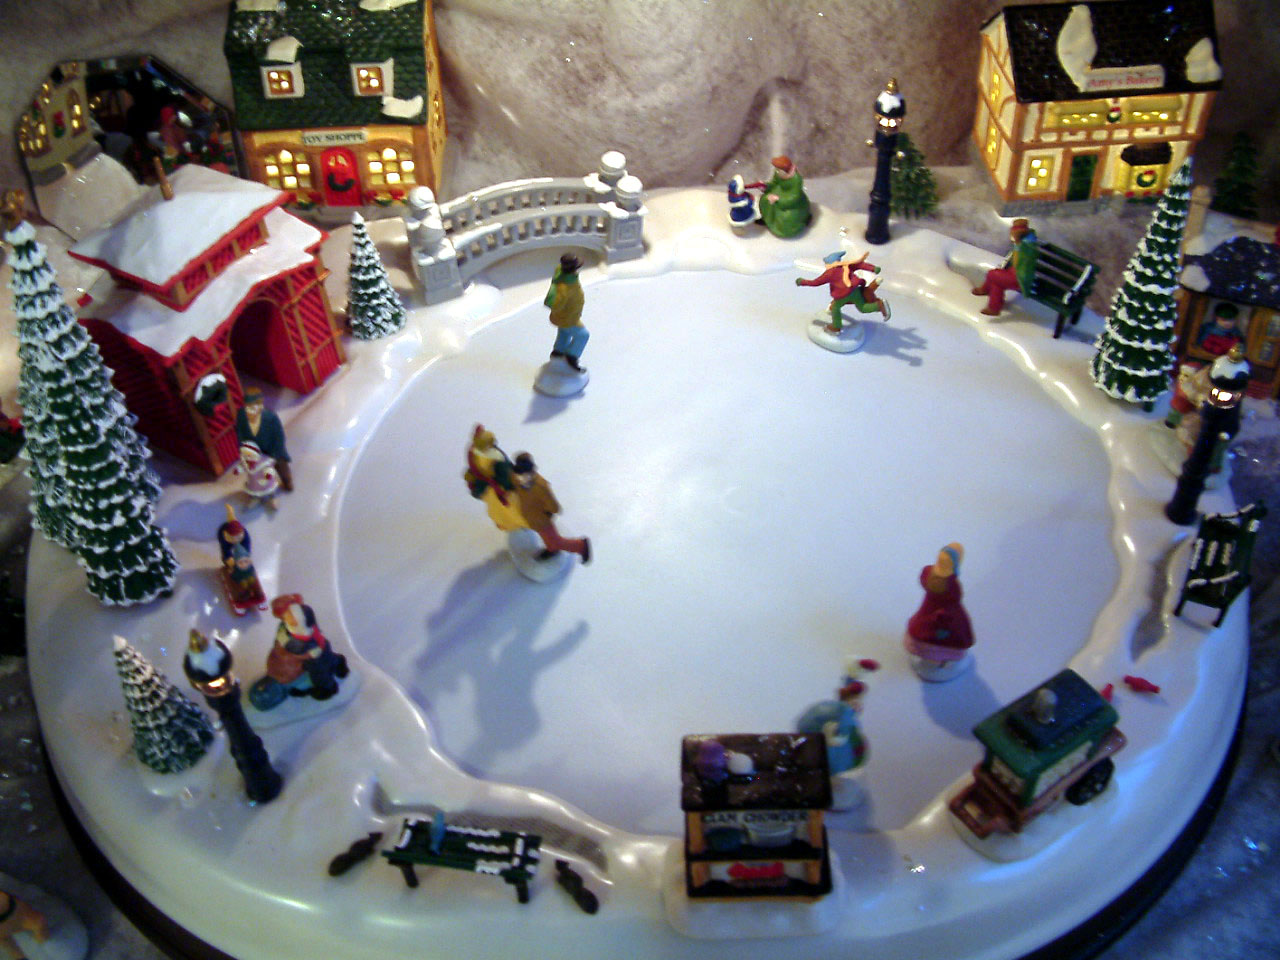 Here S The Ice Skating Village My Daughter Kathy Family Gave Me Quite Some Time Ago I Don T Set It Up Every Year But Decided To This Because Of